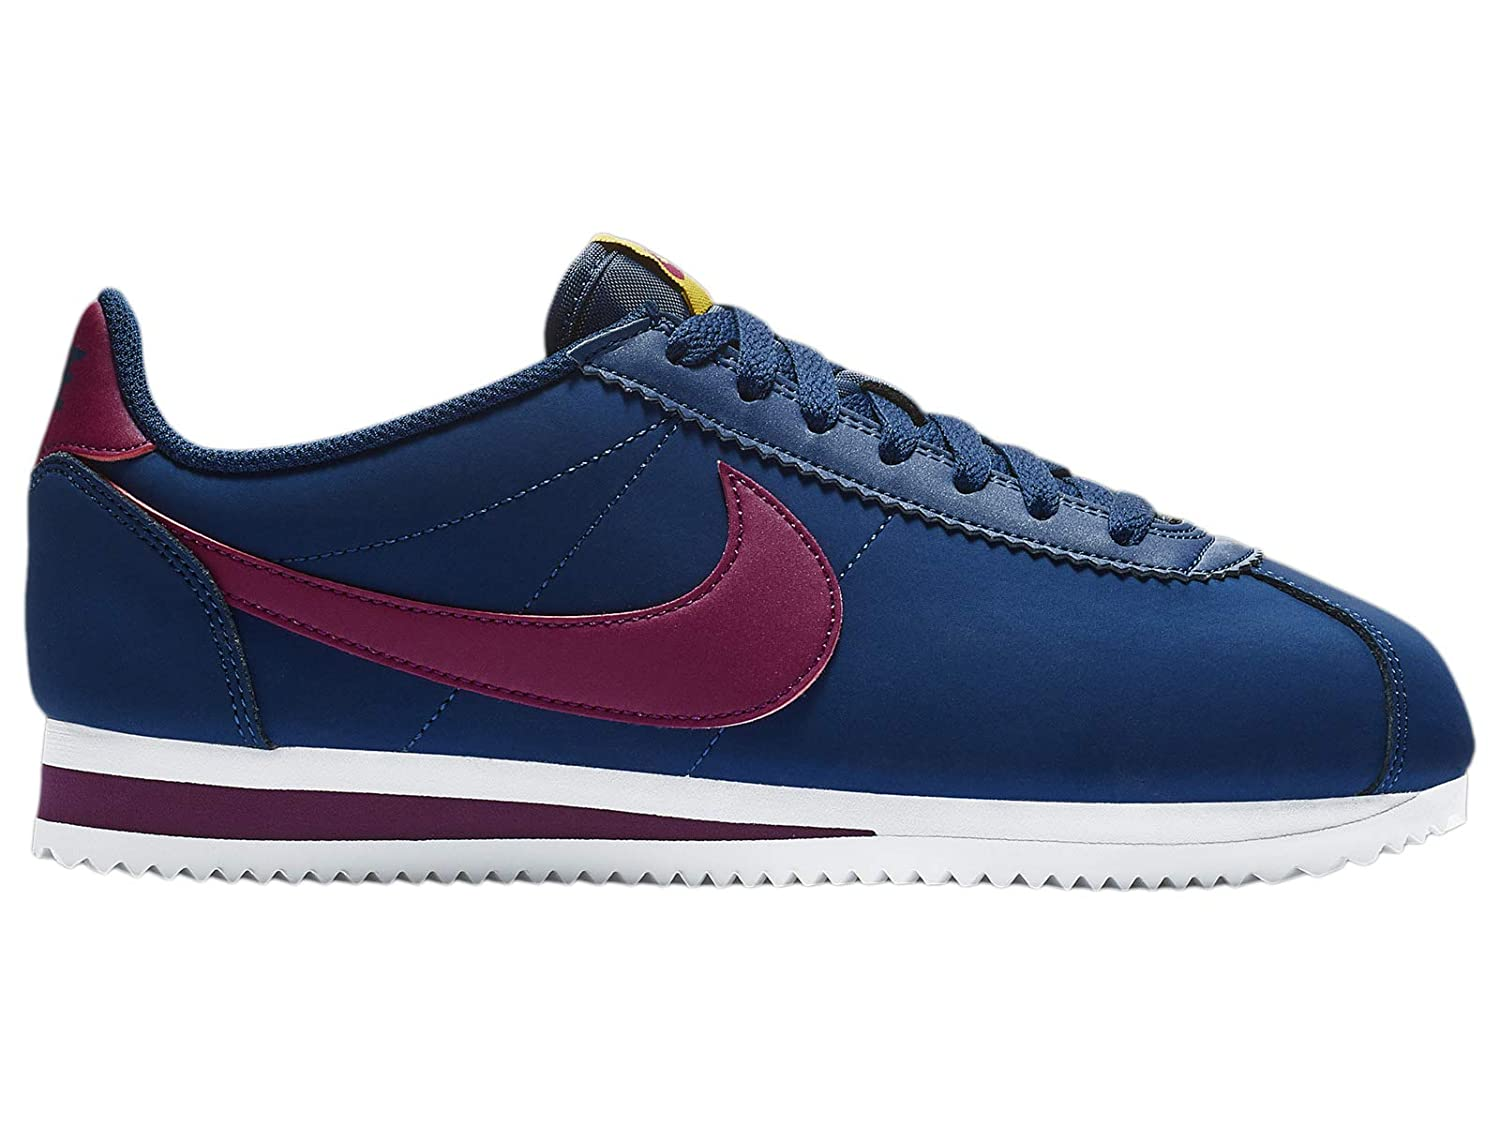 promo code 30600 074cb Nike Women's Classic Cortez Leather Casual Shoes